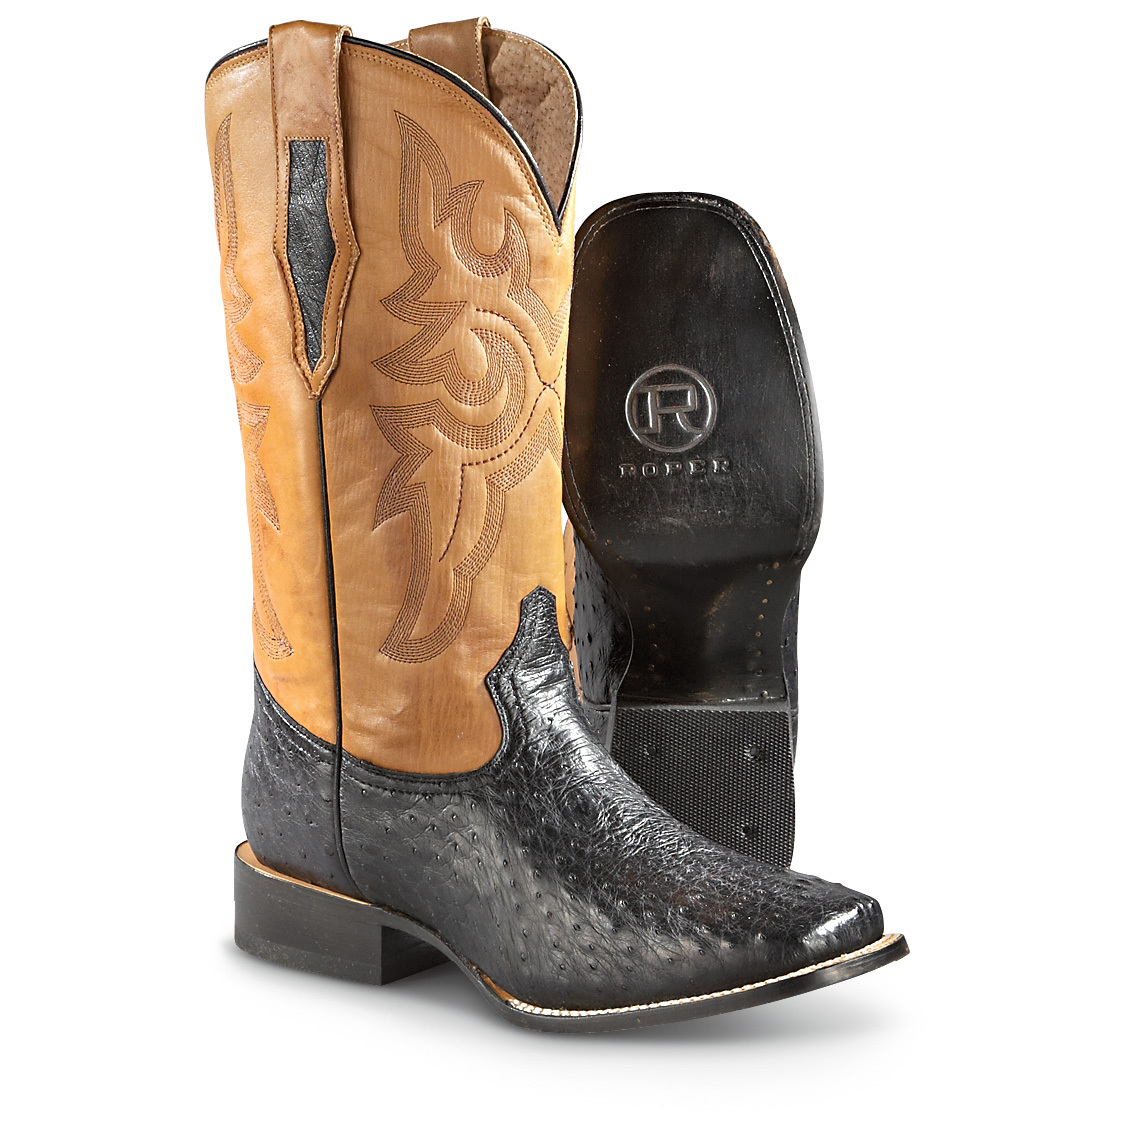 Roper Square Toe Exotic Neck Ostrich Western Leather Boots are SO comfortable. BIG BUCKS OFF! Walk tall like an ostrich! Feast your eyeballs on these authentic Full-quill Neck Ostrich Cowboy Boots. And the foot here is 100% ostrich... a rugged leather, noted for incredible strength. Our buying power takes BIG BUCKS OFF the usual in-store price tag! Just the kicks for country line dancing, animal auctions, rodeos and painting the town!Down that happy trail: Exotic full-quill neck ostrich leather foot Leather shaft with Western accents Cushioned footbed for shock absorption and all-day comfort Roomy square toe Long-lasting lemonwood peg and brass nail construction Leather outsole lasts many a mile Dual pull-on loops. State Size, as available in the Shopping Cart below. Medium width. Treat your feet to the real deal!!!! Limited Quantities !!! - $129.99